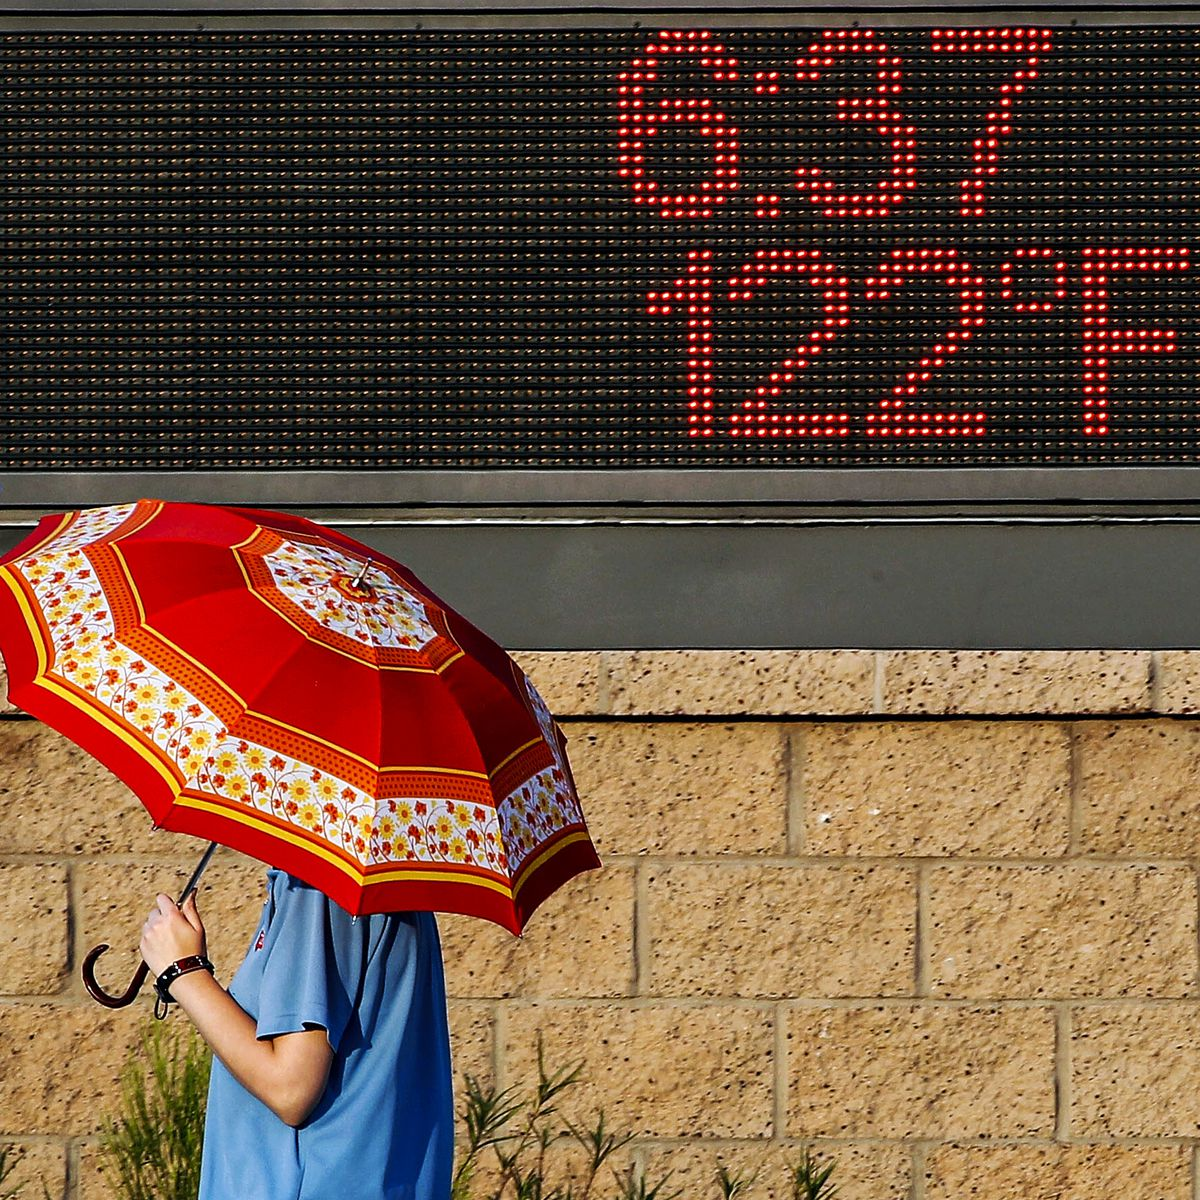 A pedestrian uses an umbrella to get some relief from the sun as she walks past a sign displaying the temperature on June 20, 2017 in Phoenix, Arizona.